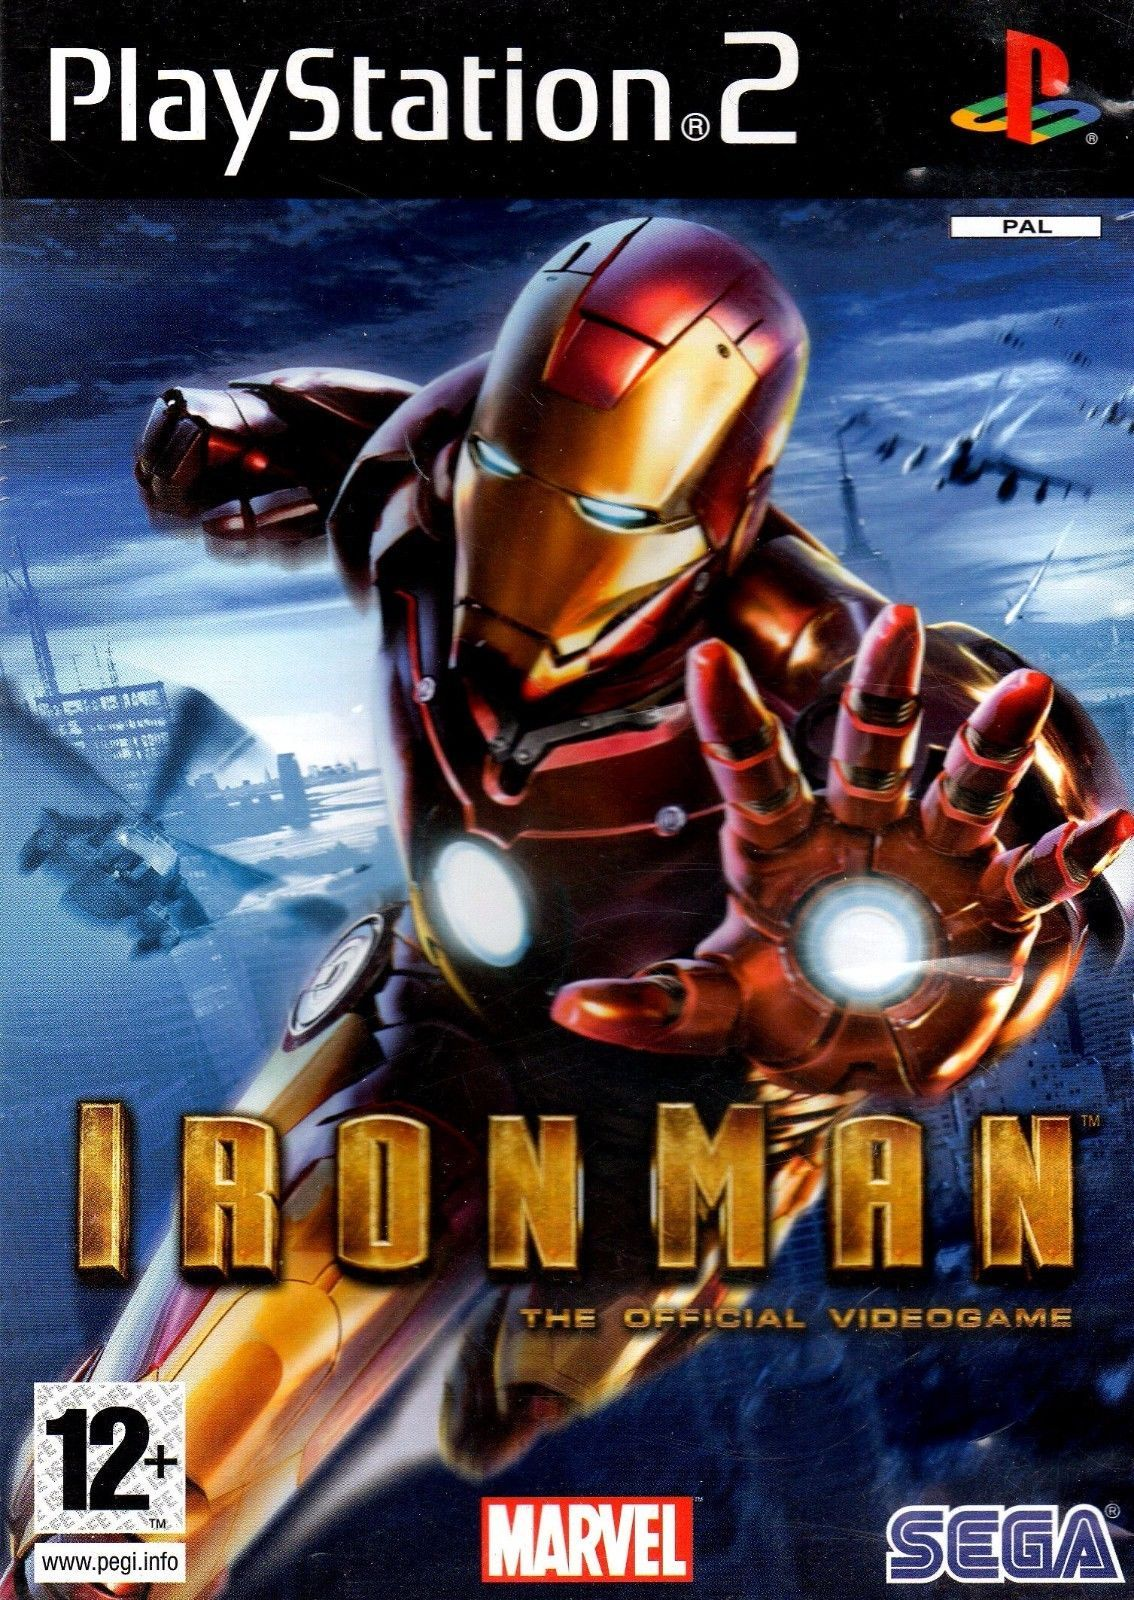 Iron man playstation 2 game play for fun slot machines free download